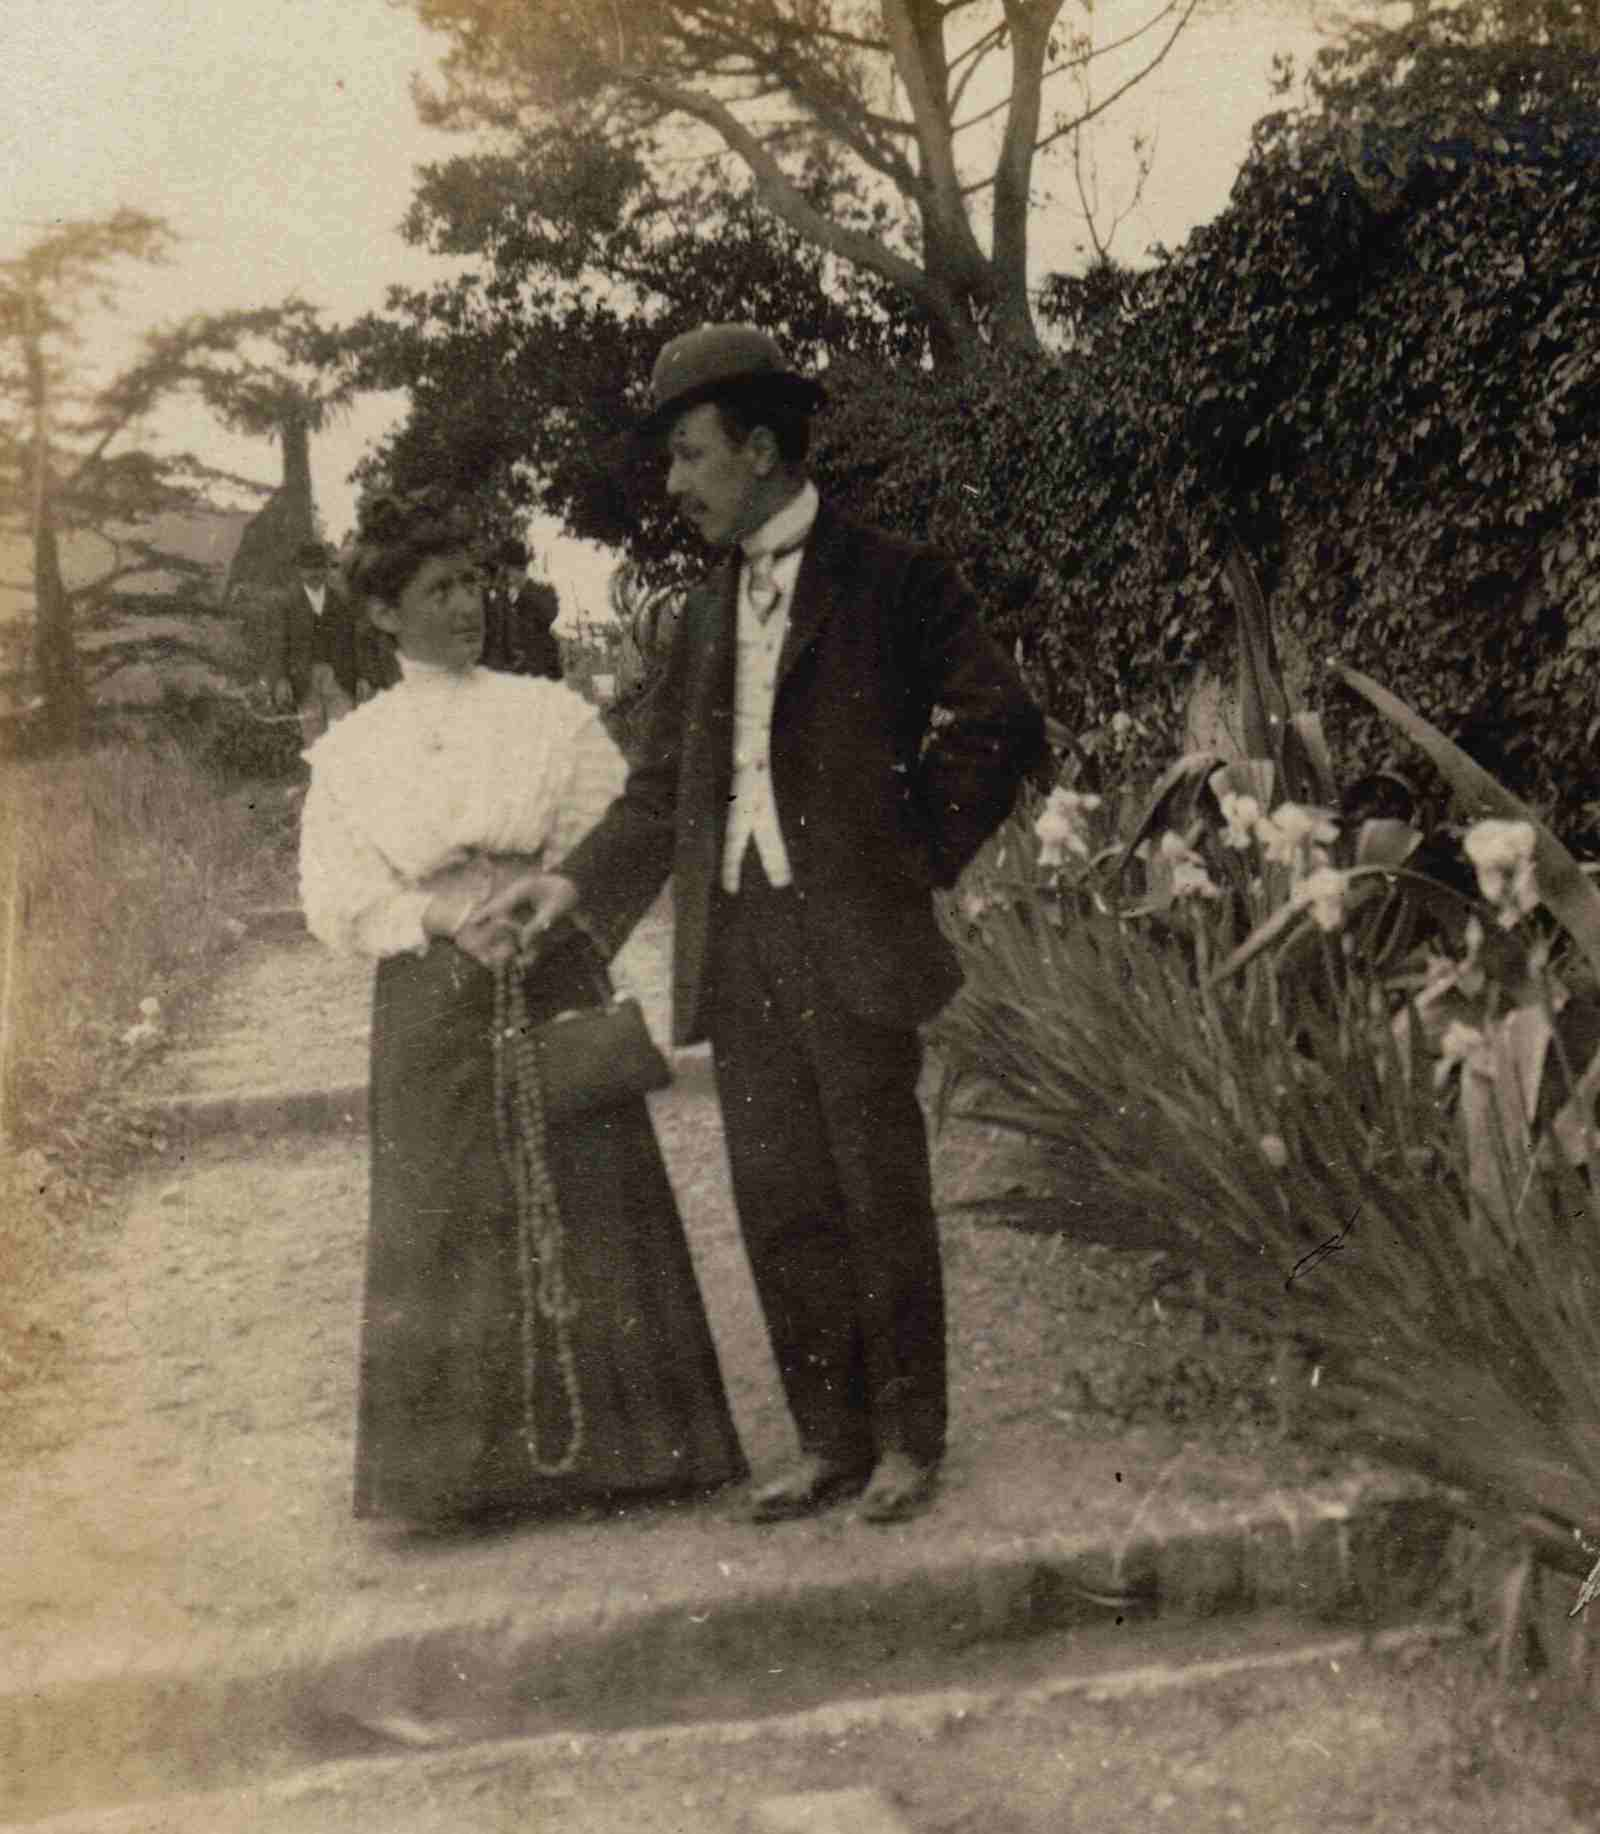 1 - Guido Guido and his wife Cesira 1910